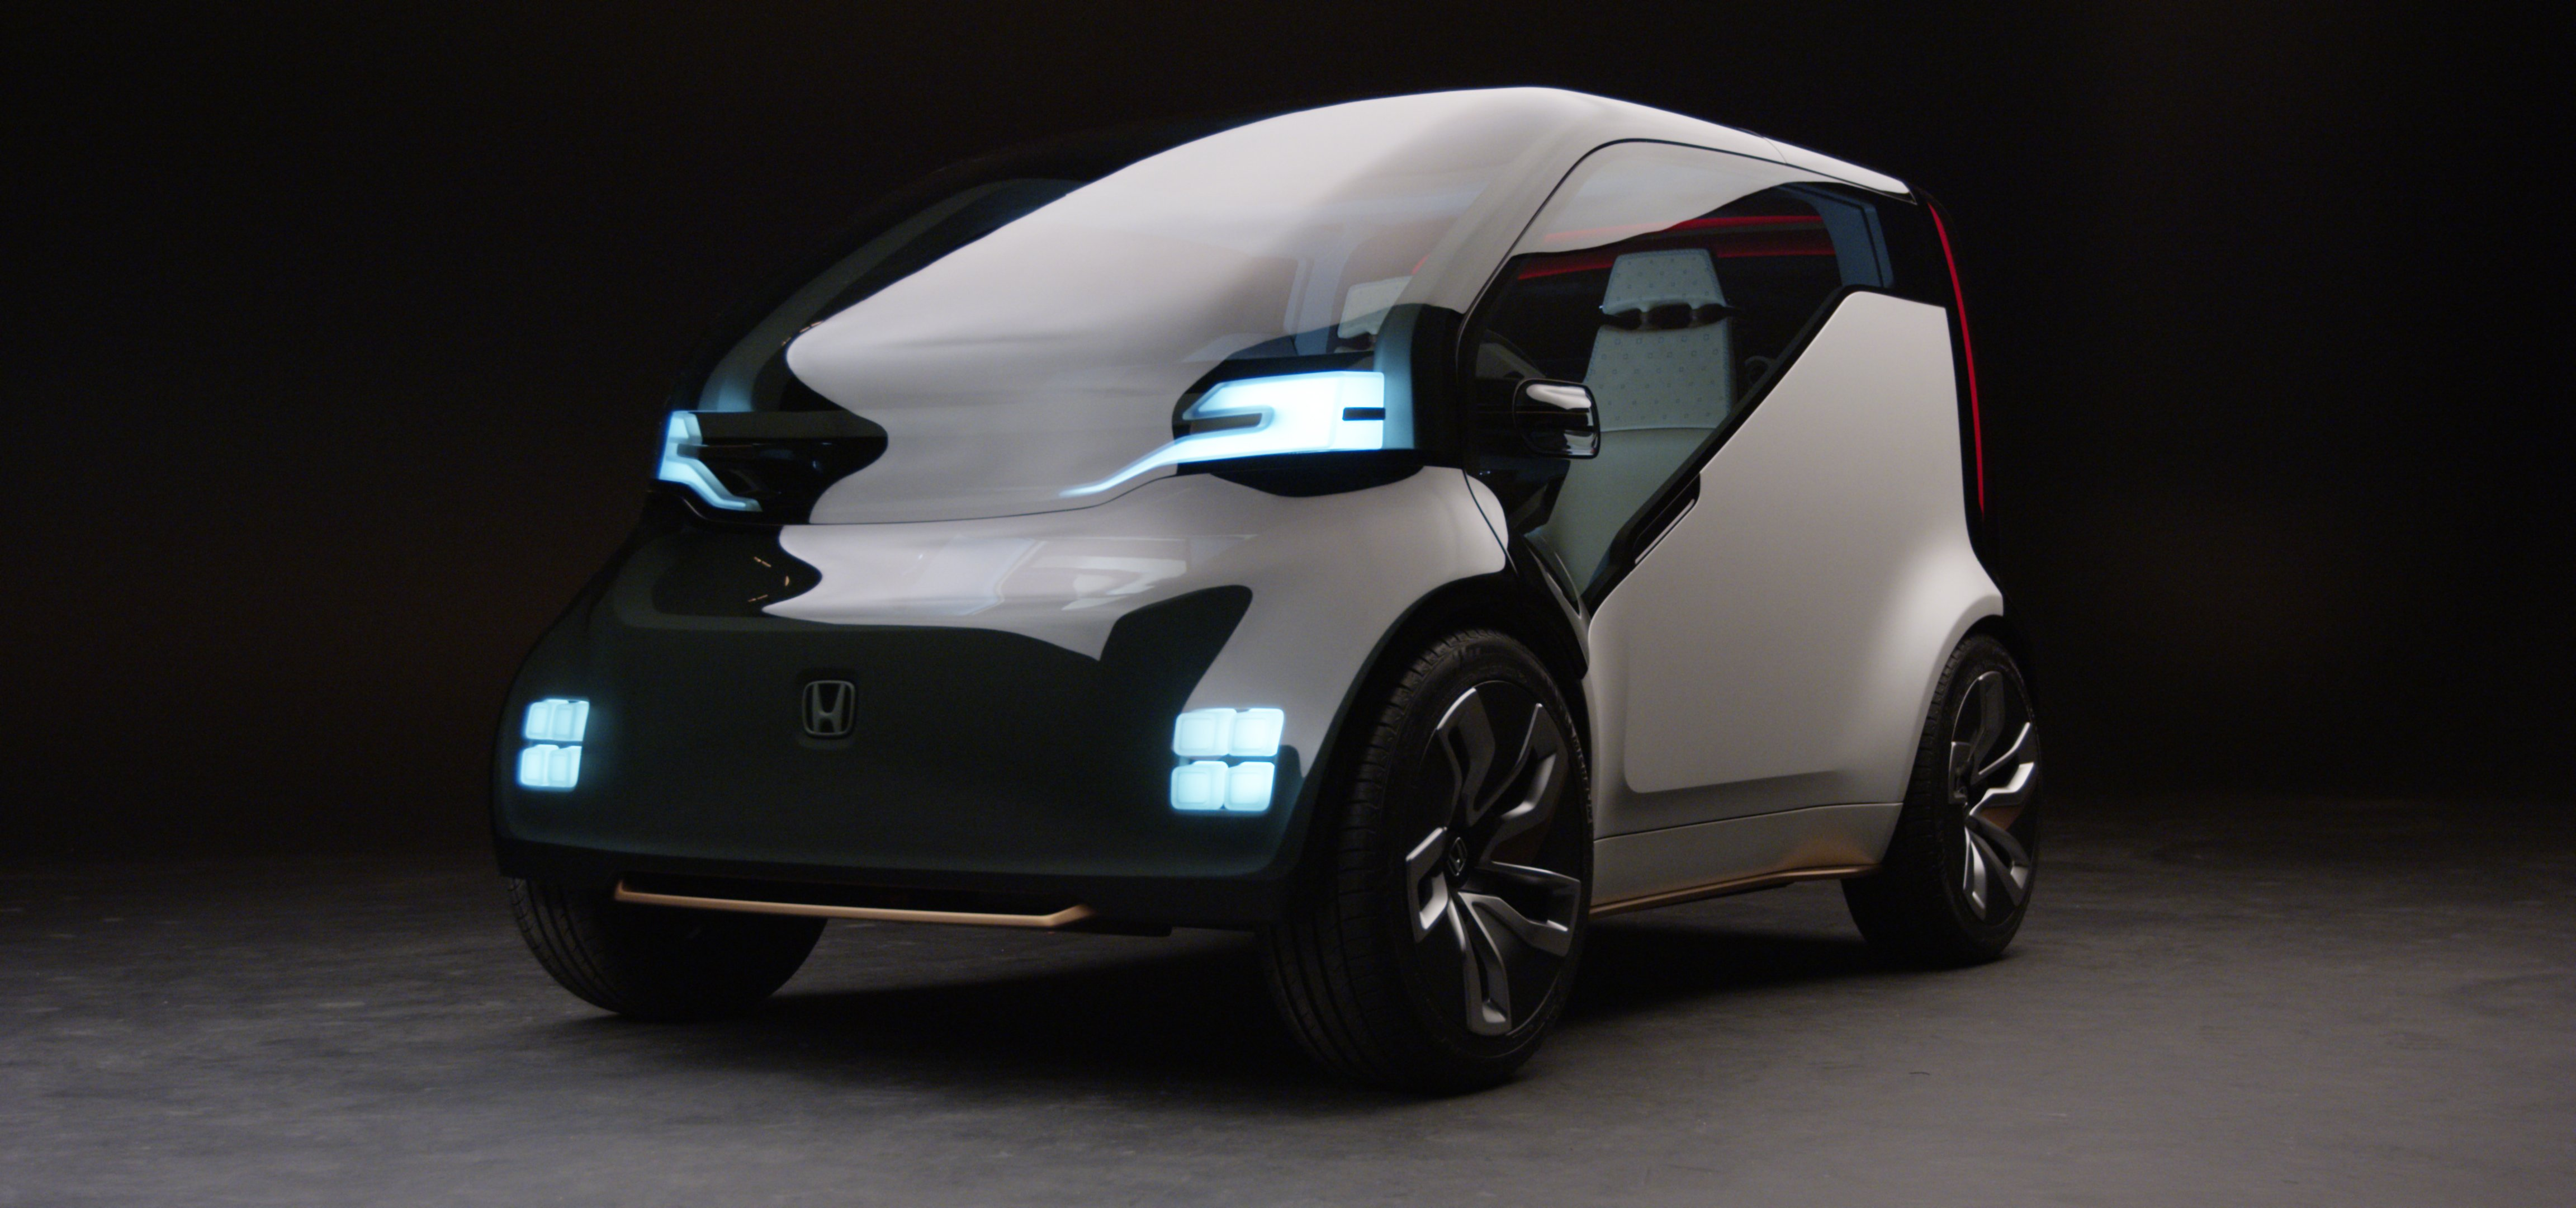 pros and cons of driverless cars Driverless cars: pros and cons as with most technologies, driverless cars come accompanied by a host of pros and cons while they're invaluable in many aspects, there are some major caveats.